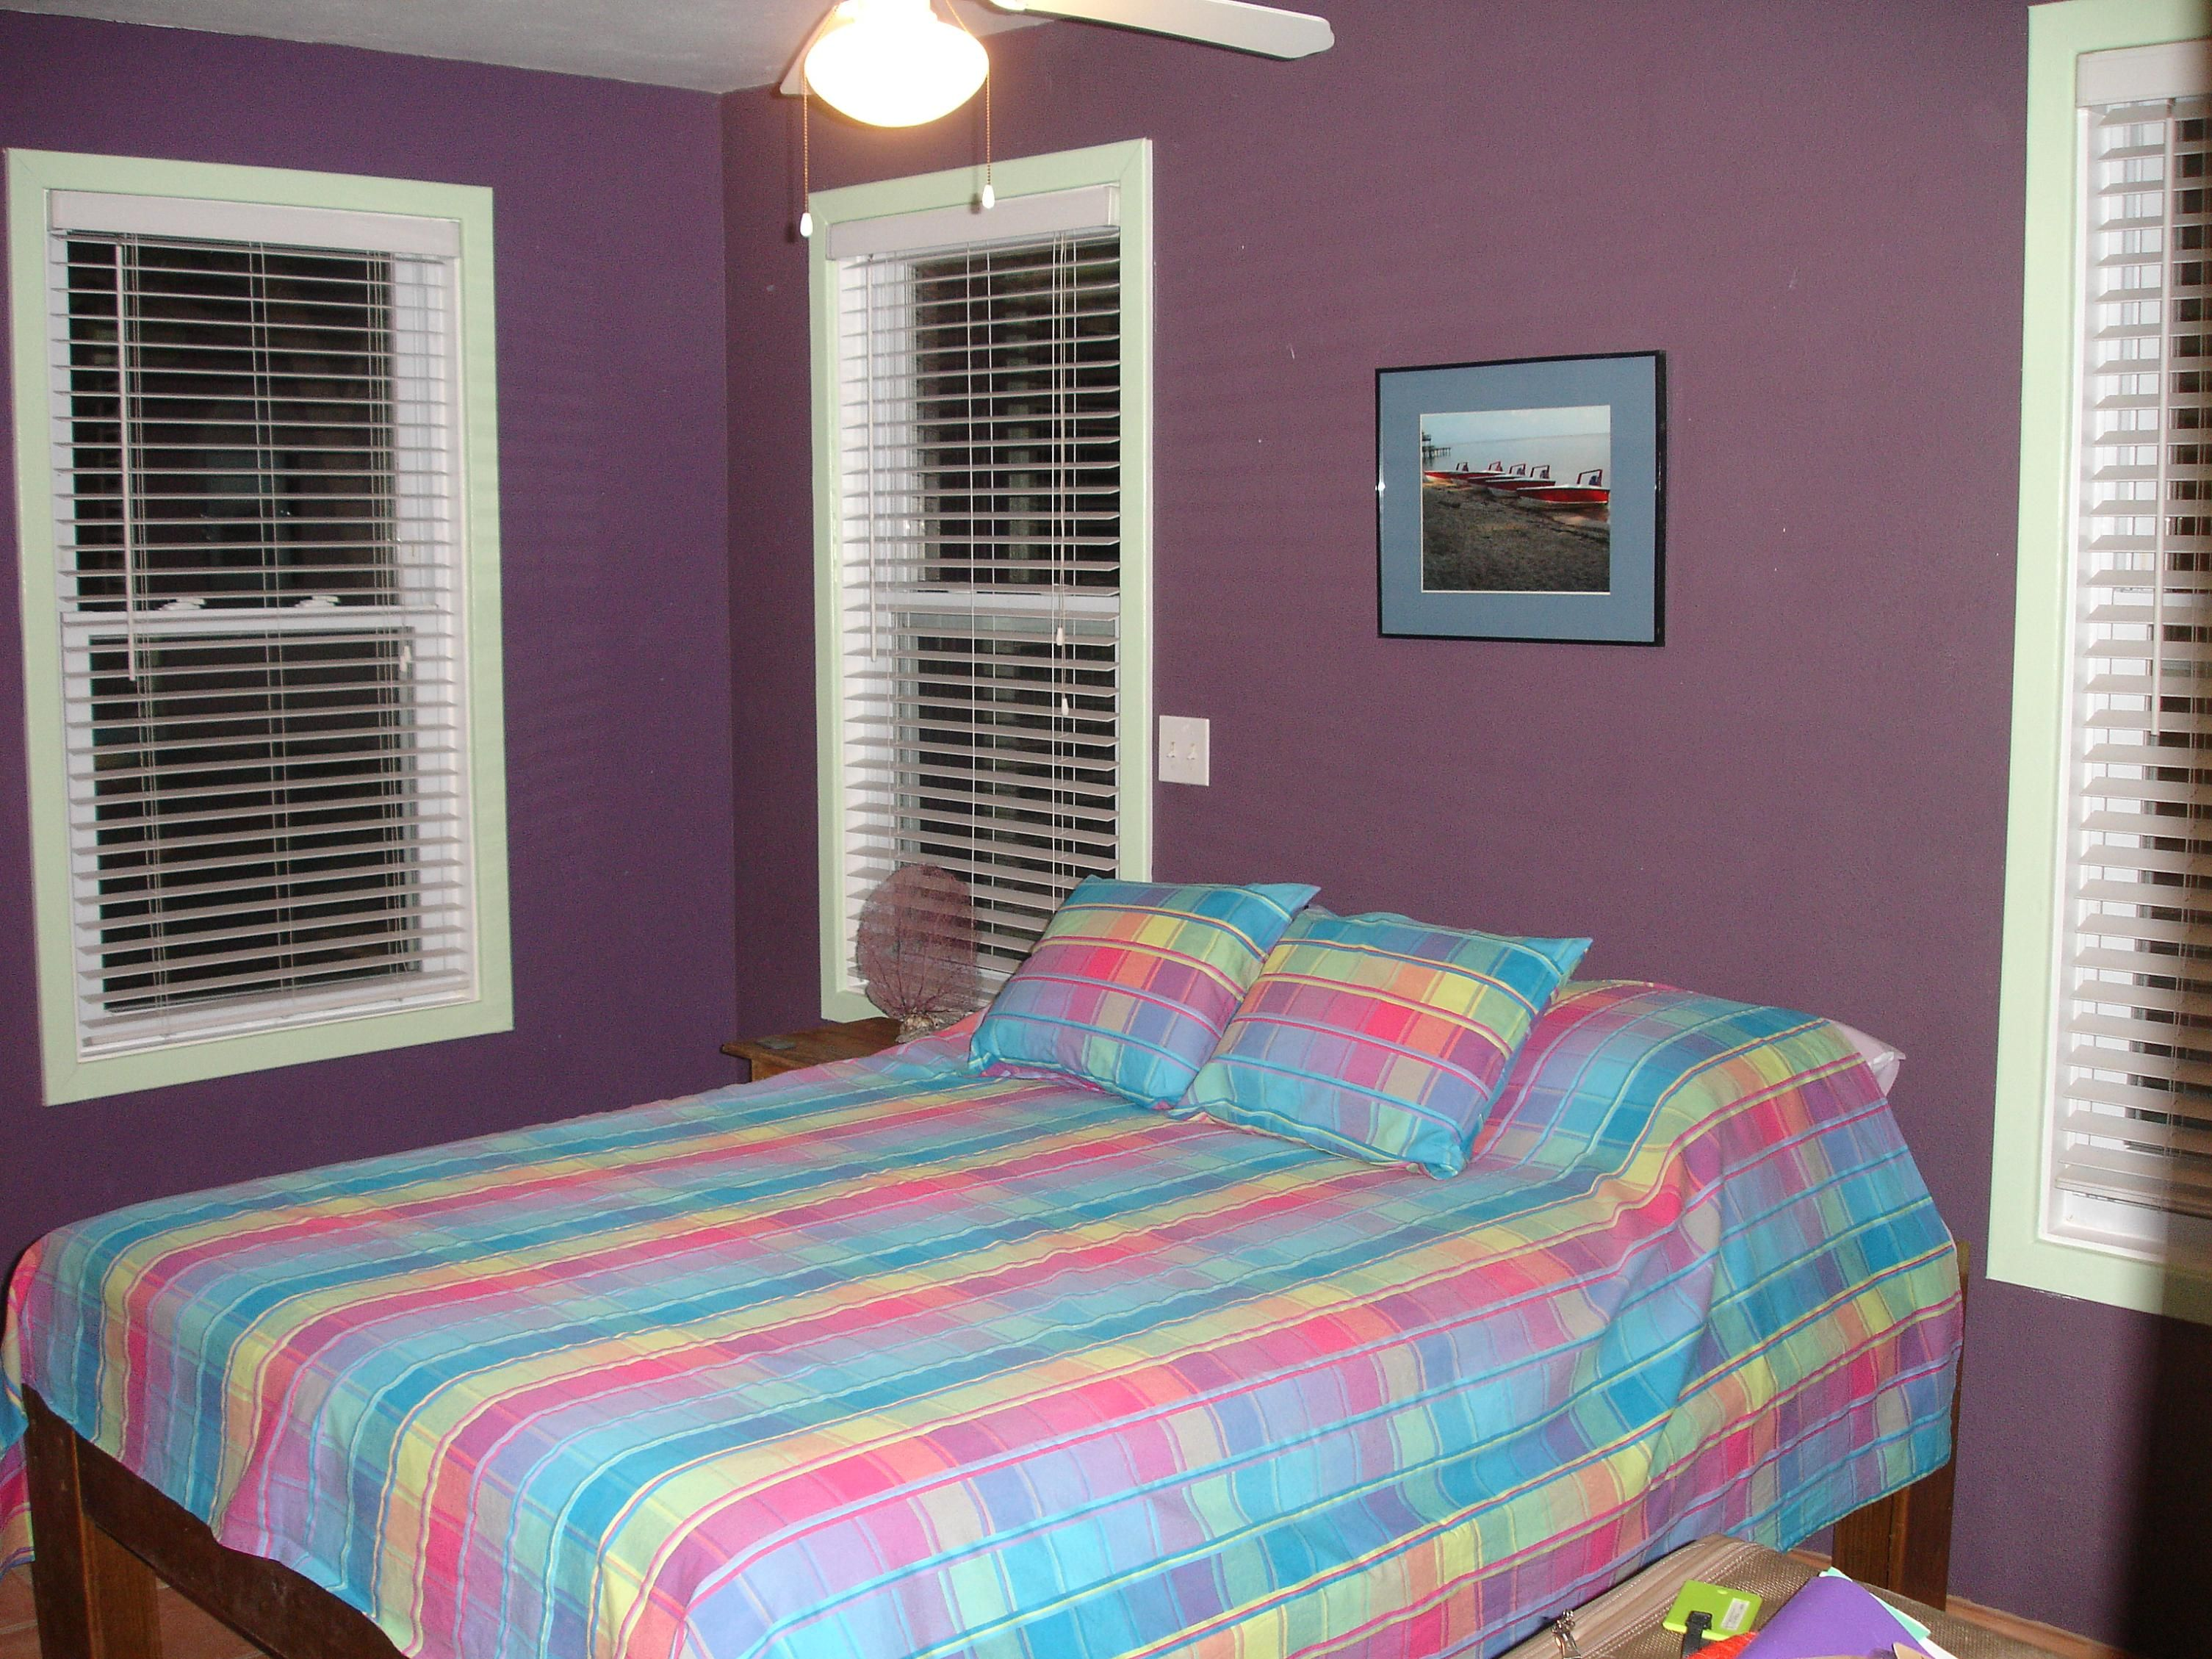 Purple room paint ideas - What Is The Best Color For Bedroom With Romantis Wall Purple Design Ideas For Best Paint